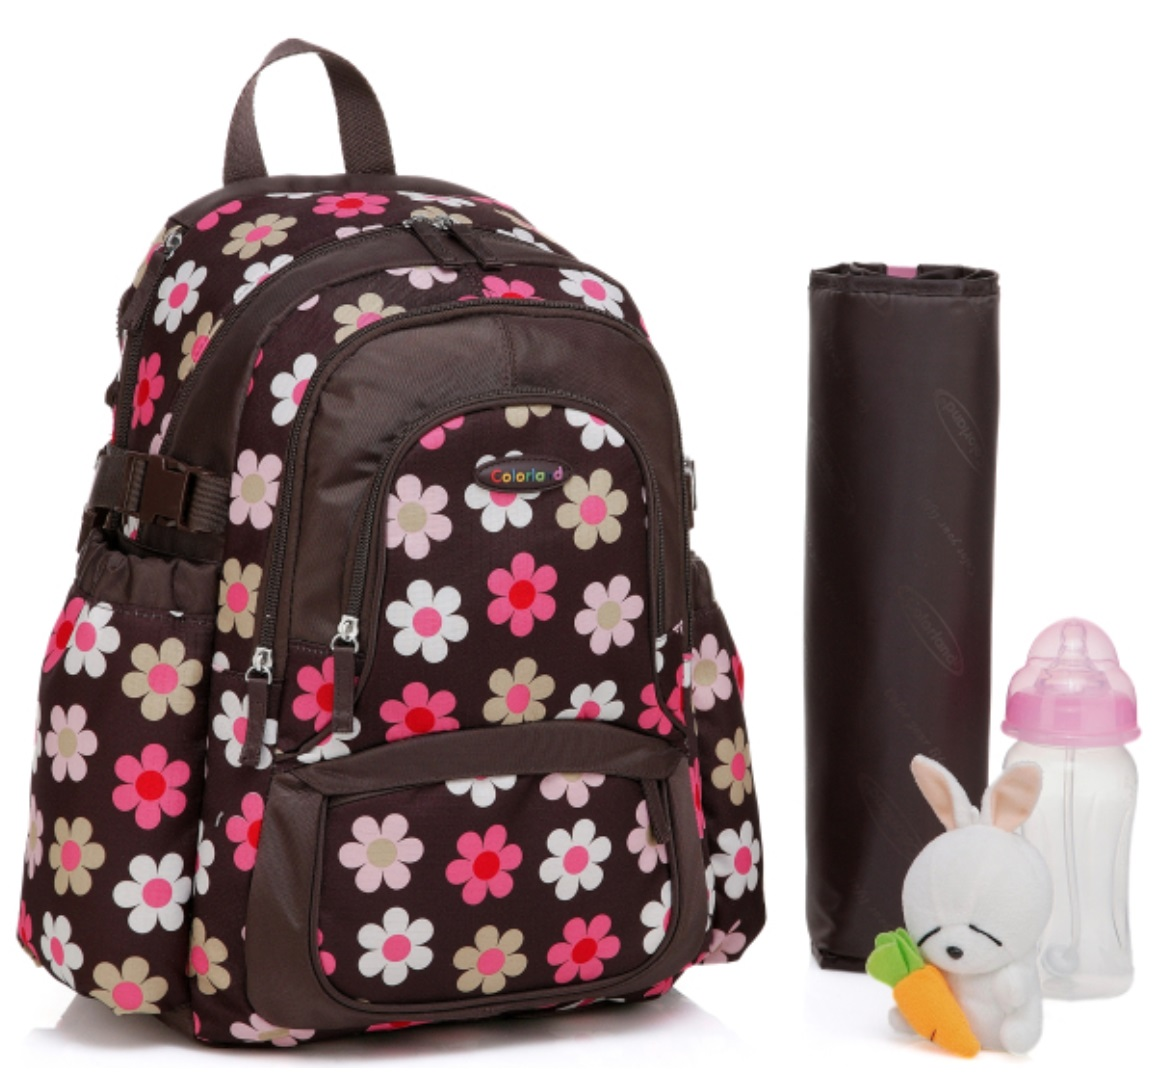 Colorland Functional Backpack Diaper Bag, French Flower